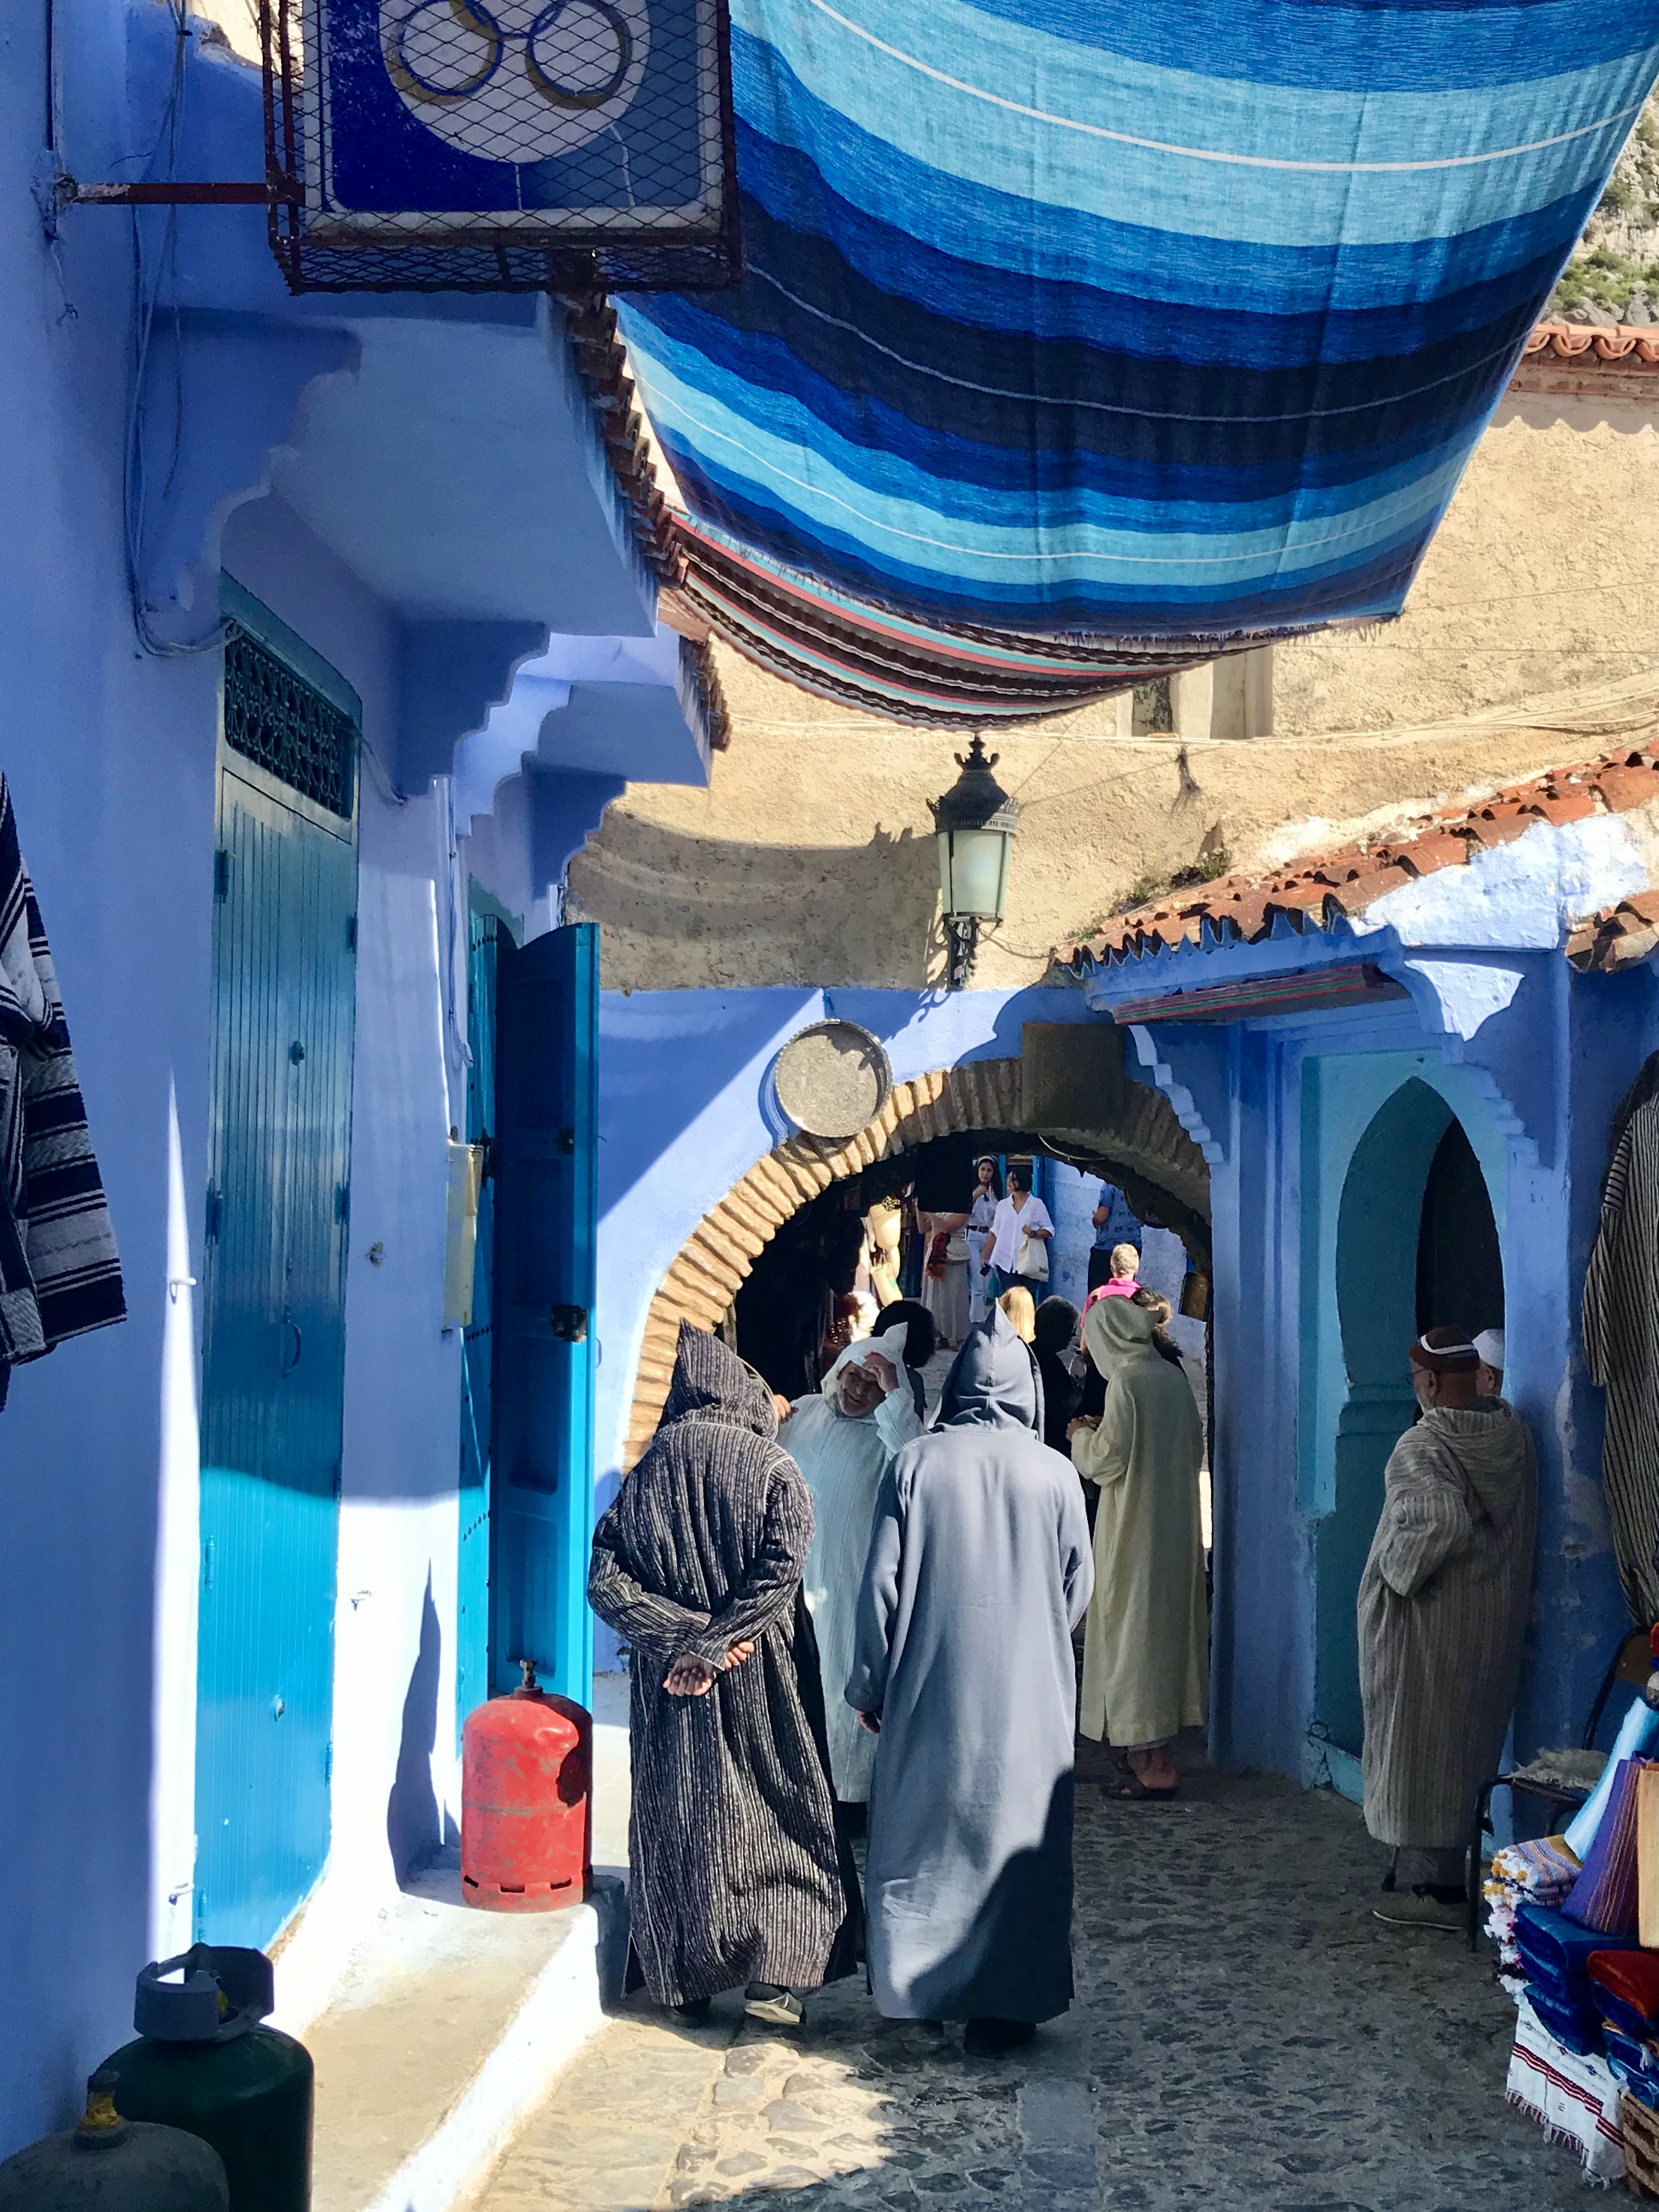 Two men in robes walking back streets of Chefchaouen